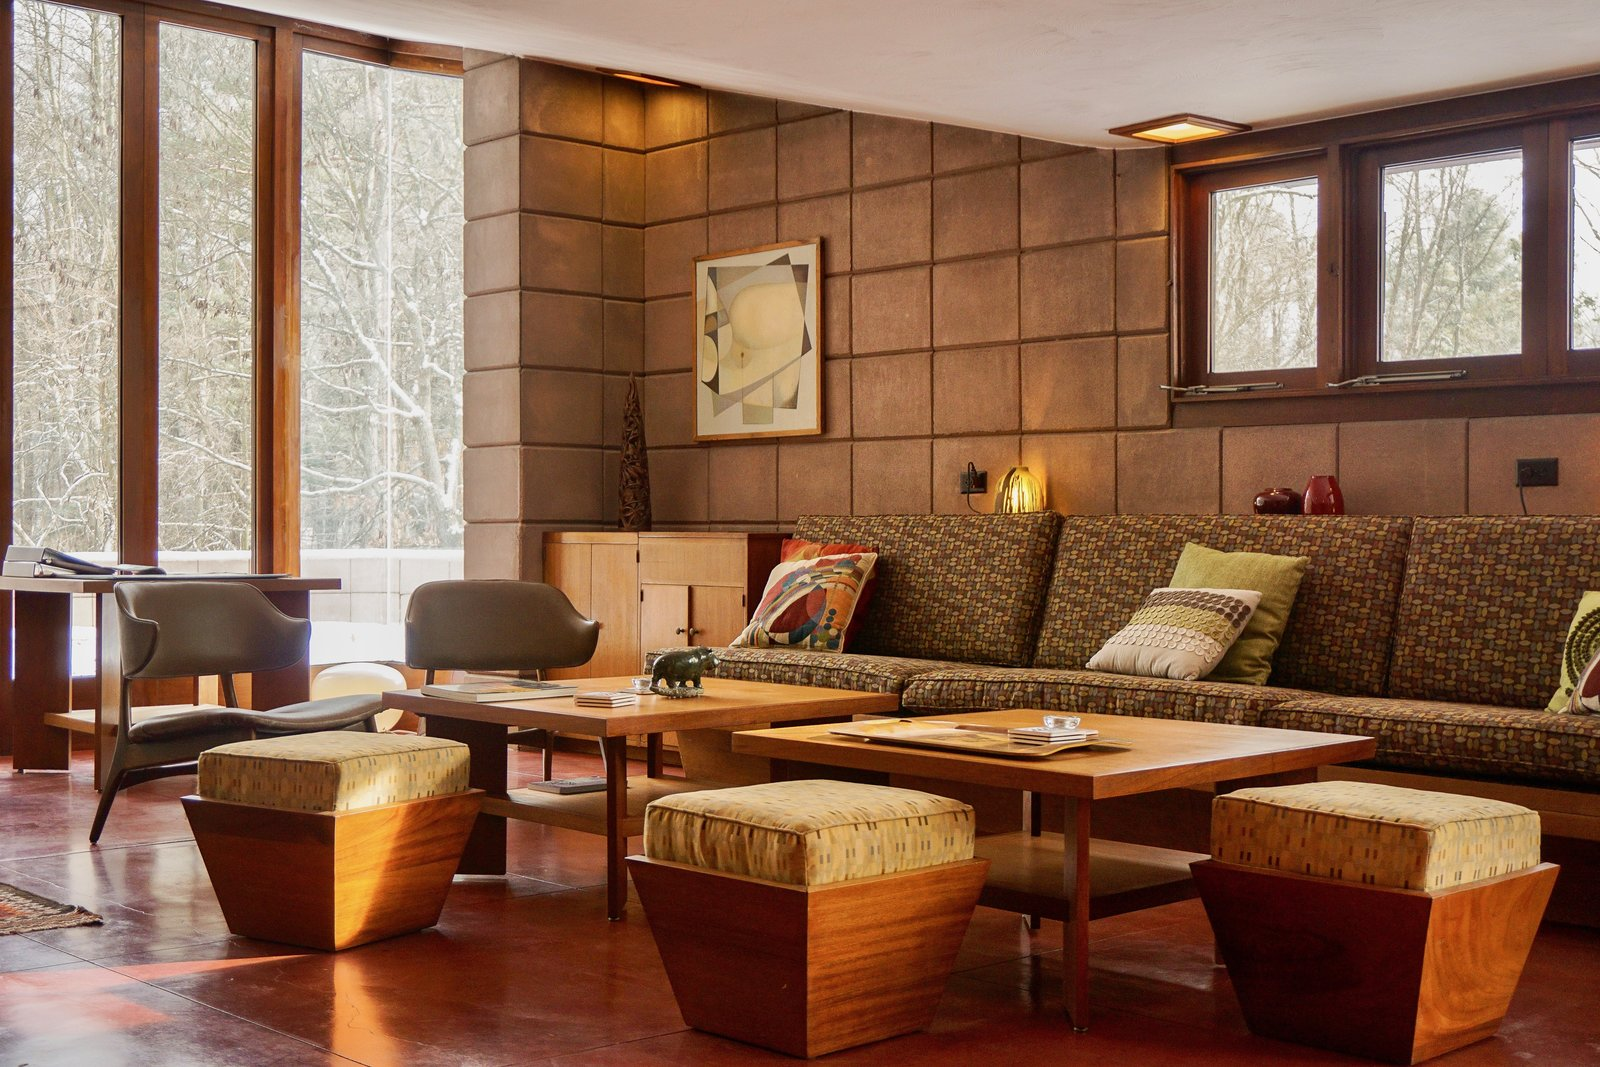 The original built in sofa remains in the Living Room.  Ten foot windows draw nature inside while Maharam and Knoll textiles decorate the furnishings.